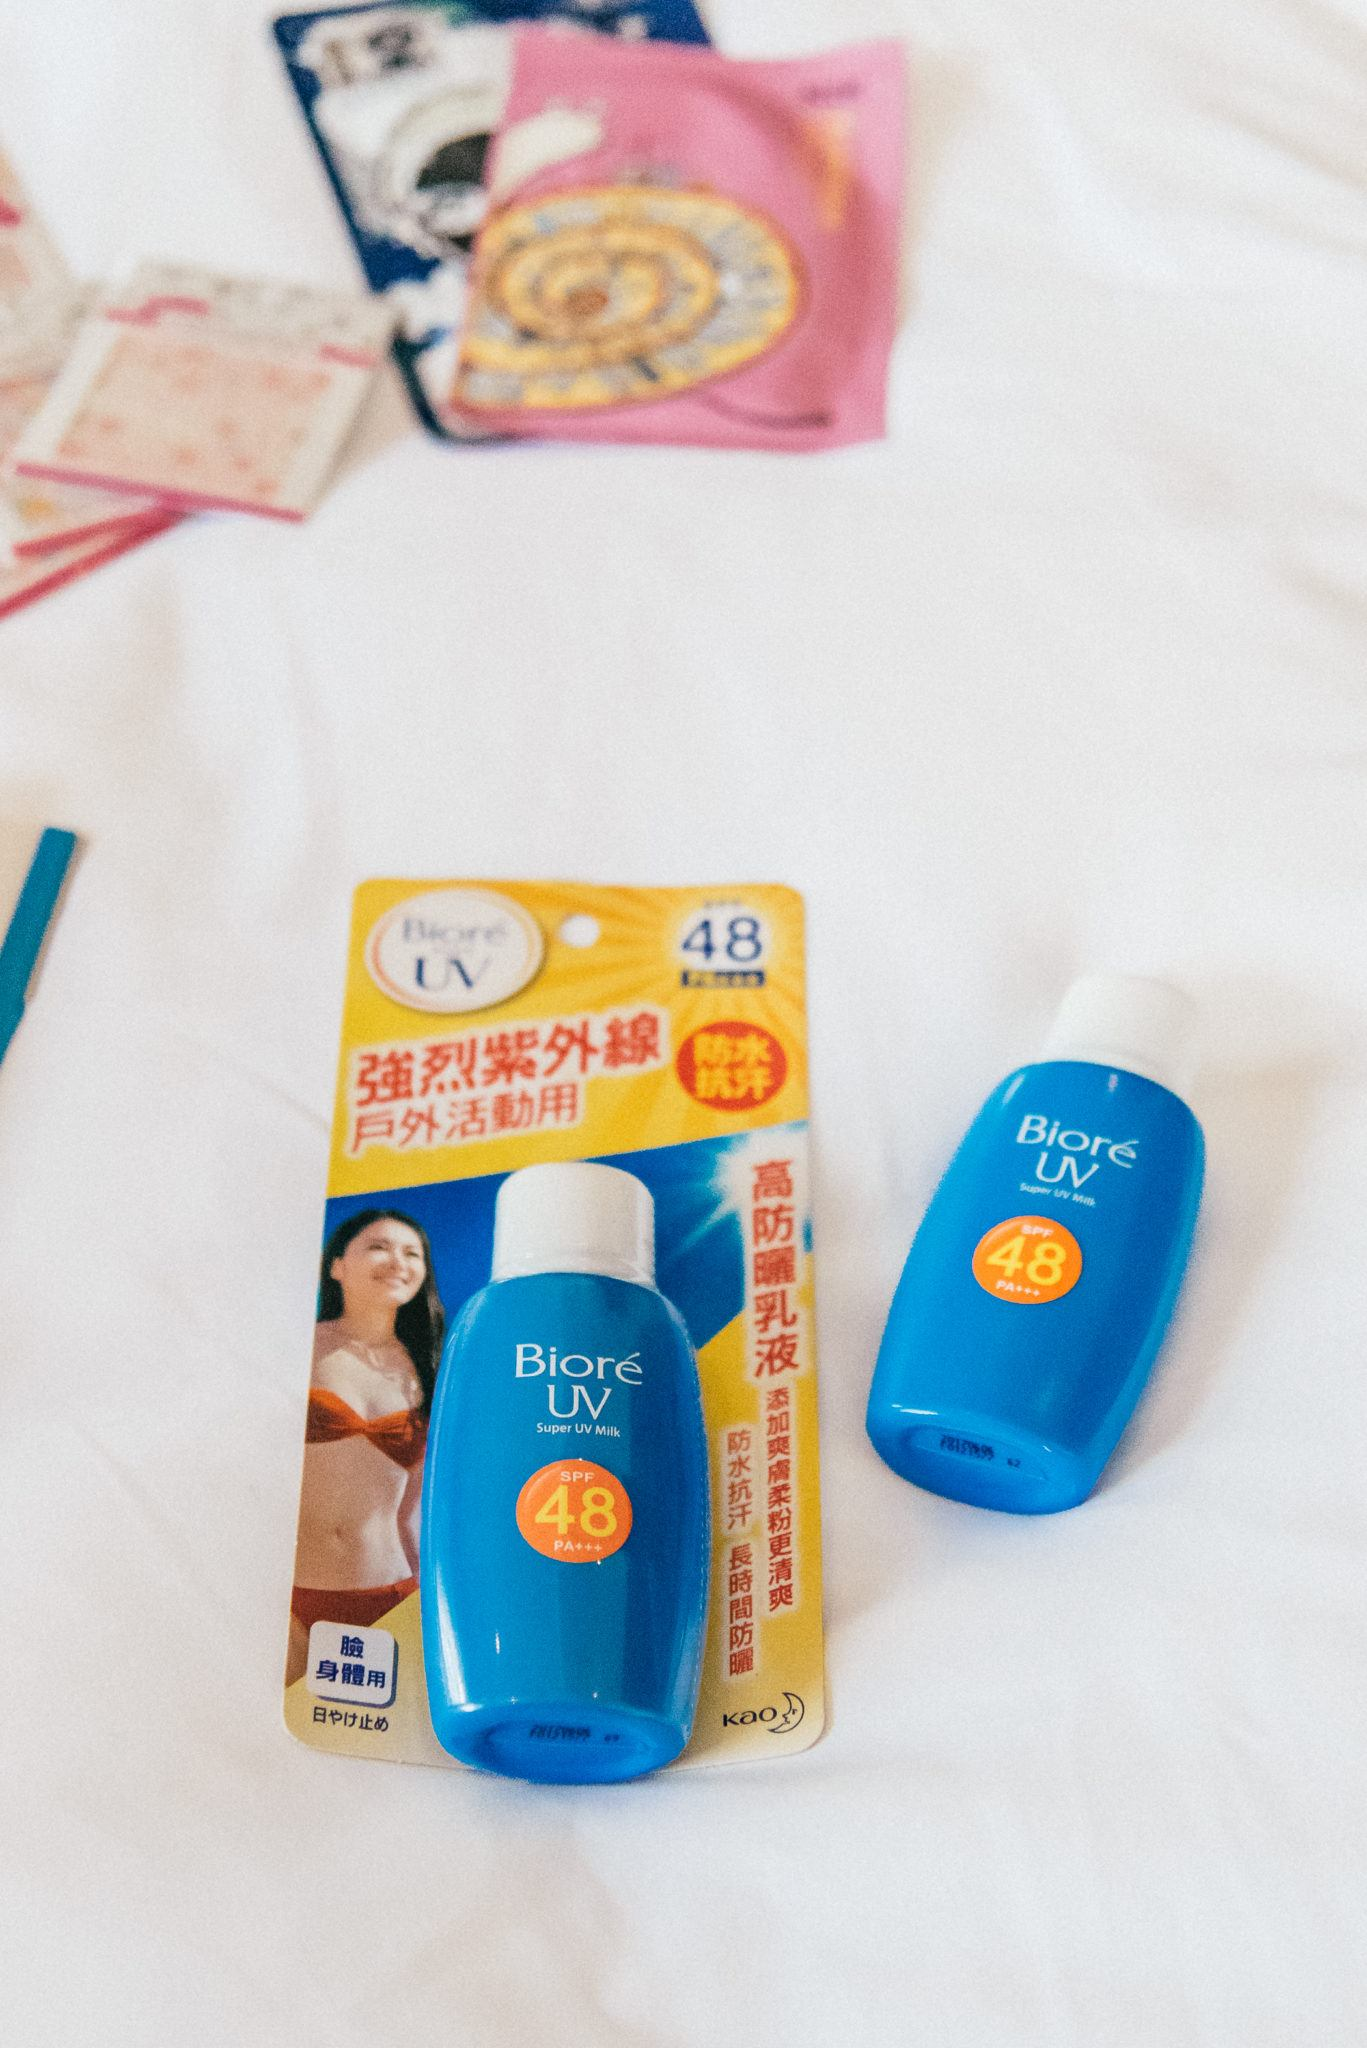 Taiwan beauty products featured by popular San Francisco travel and beauty blogger, What The Fab